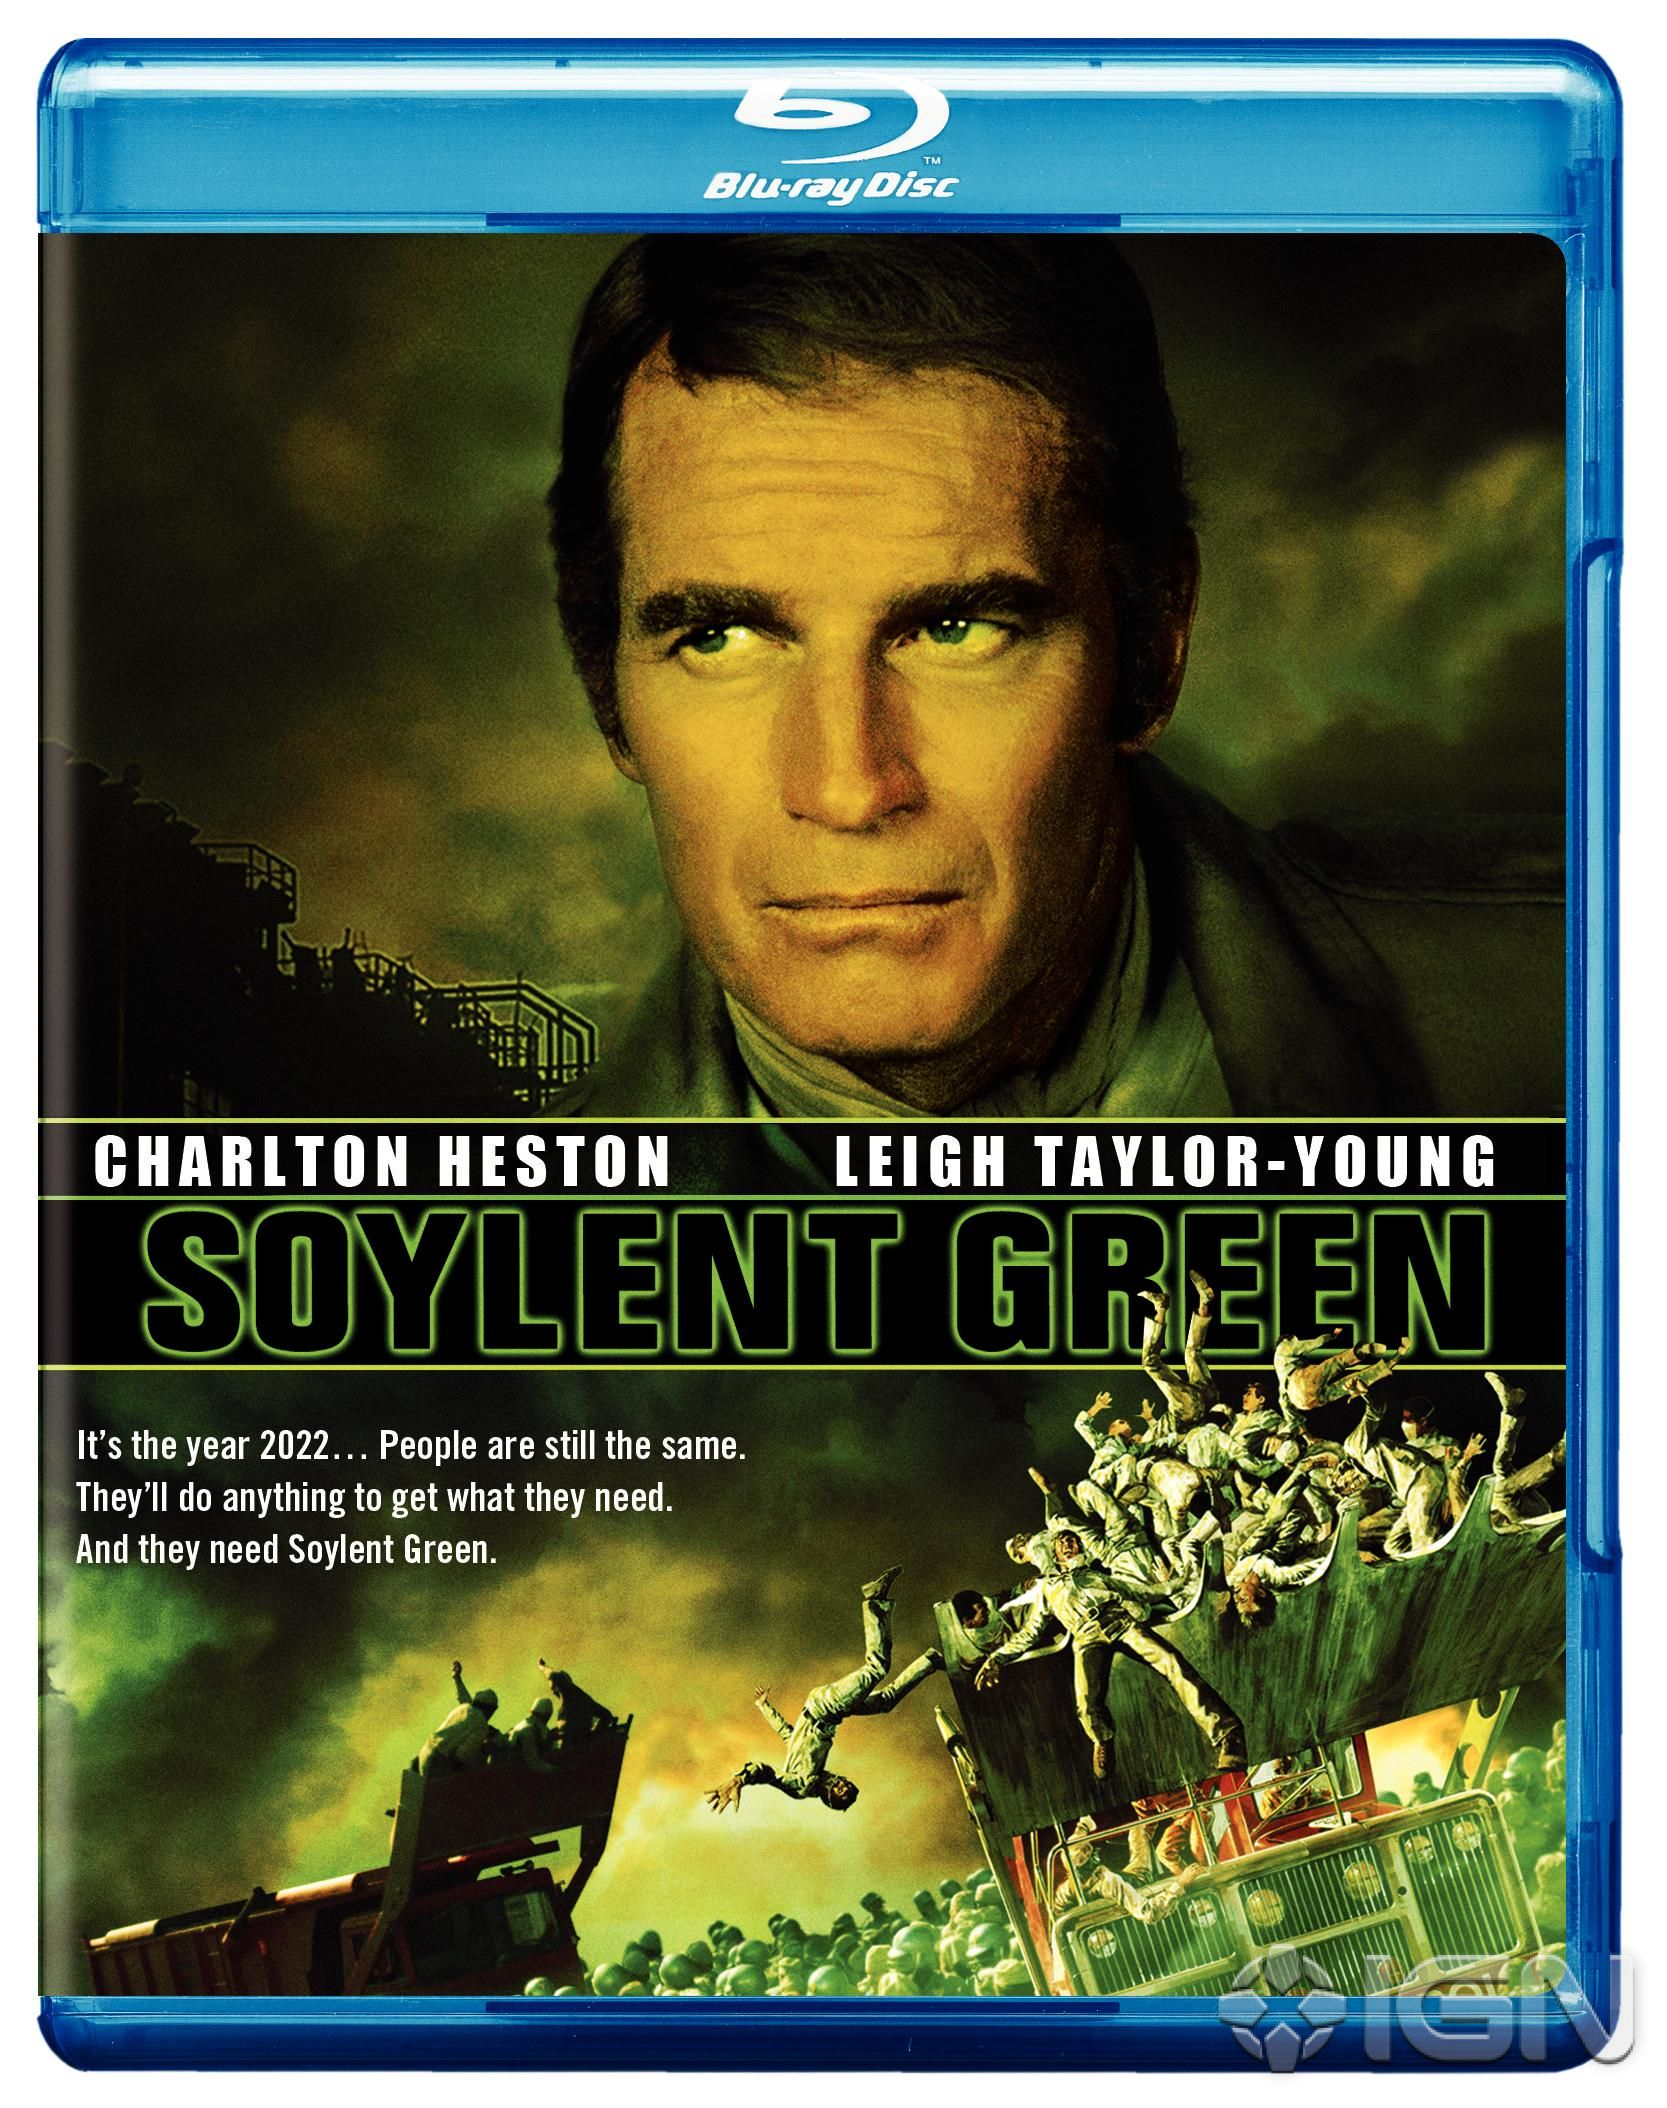 Soylent green is made out of people unprocessedginger for Soylent green